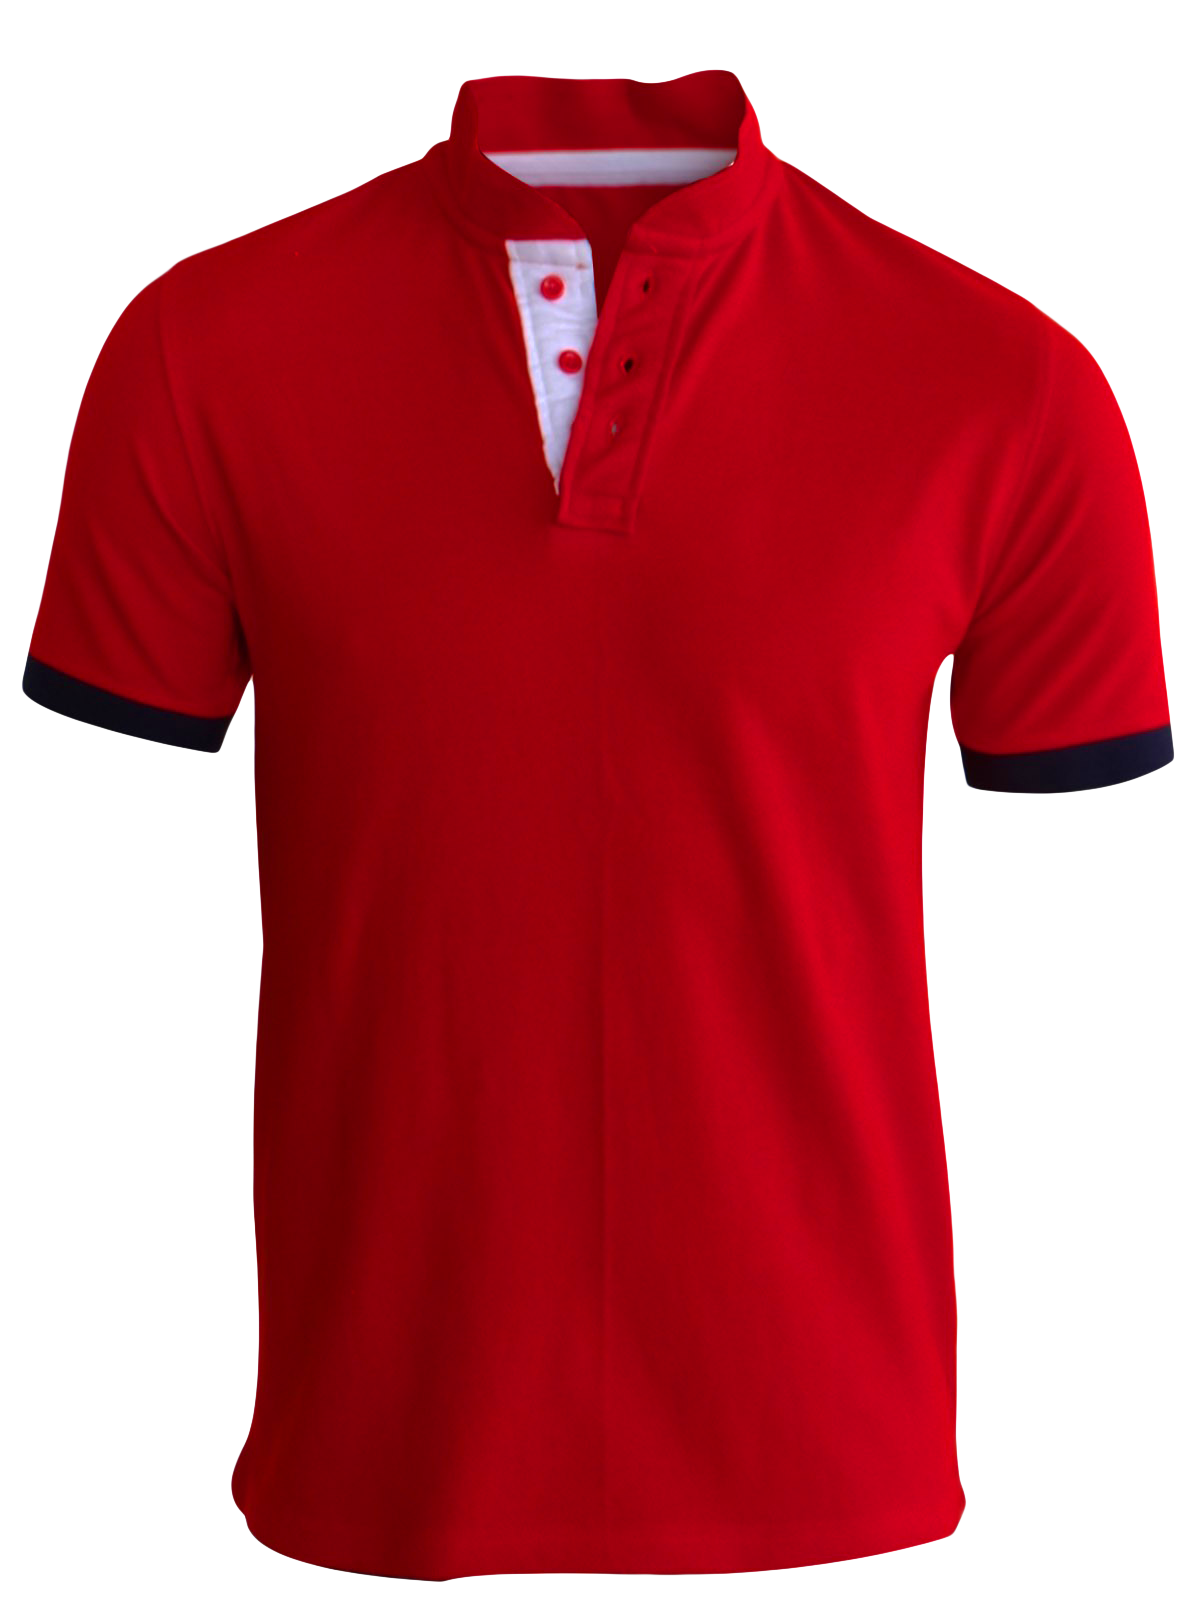 Red T-Shirt PNG Image